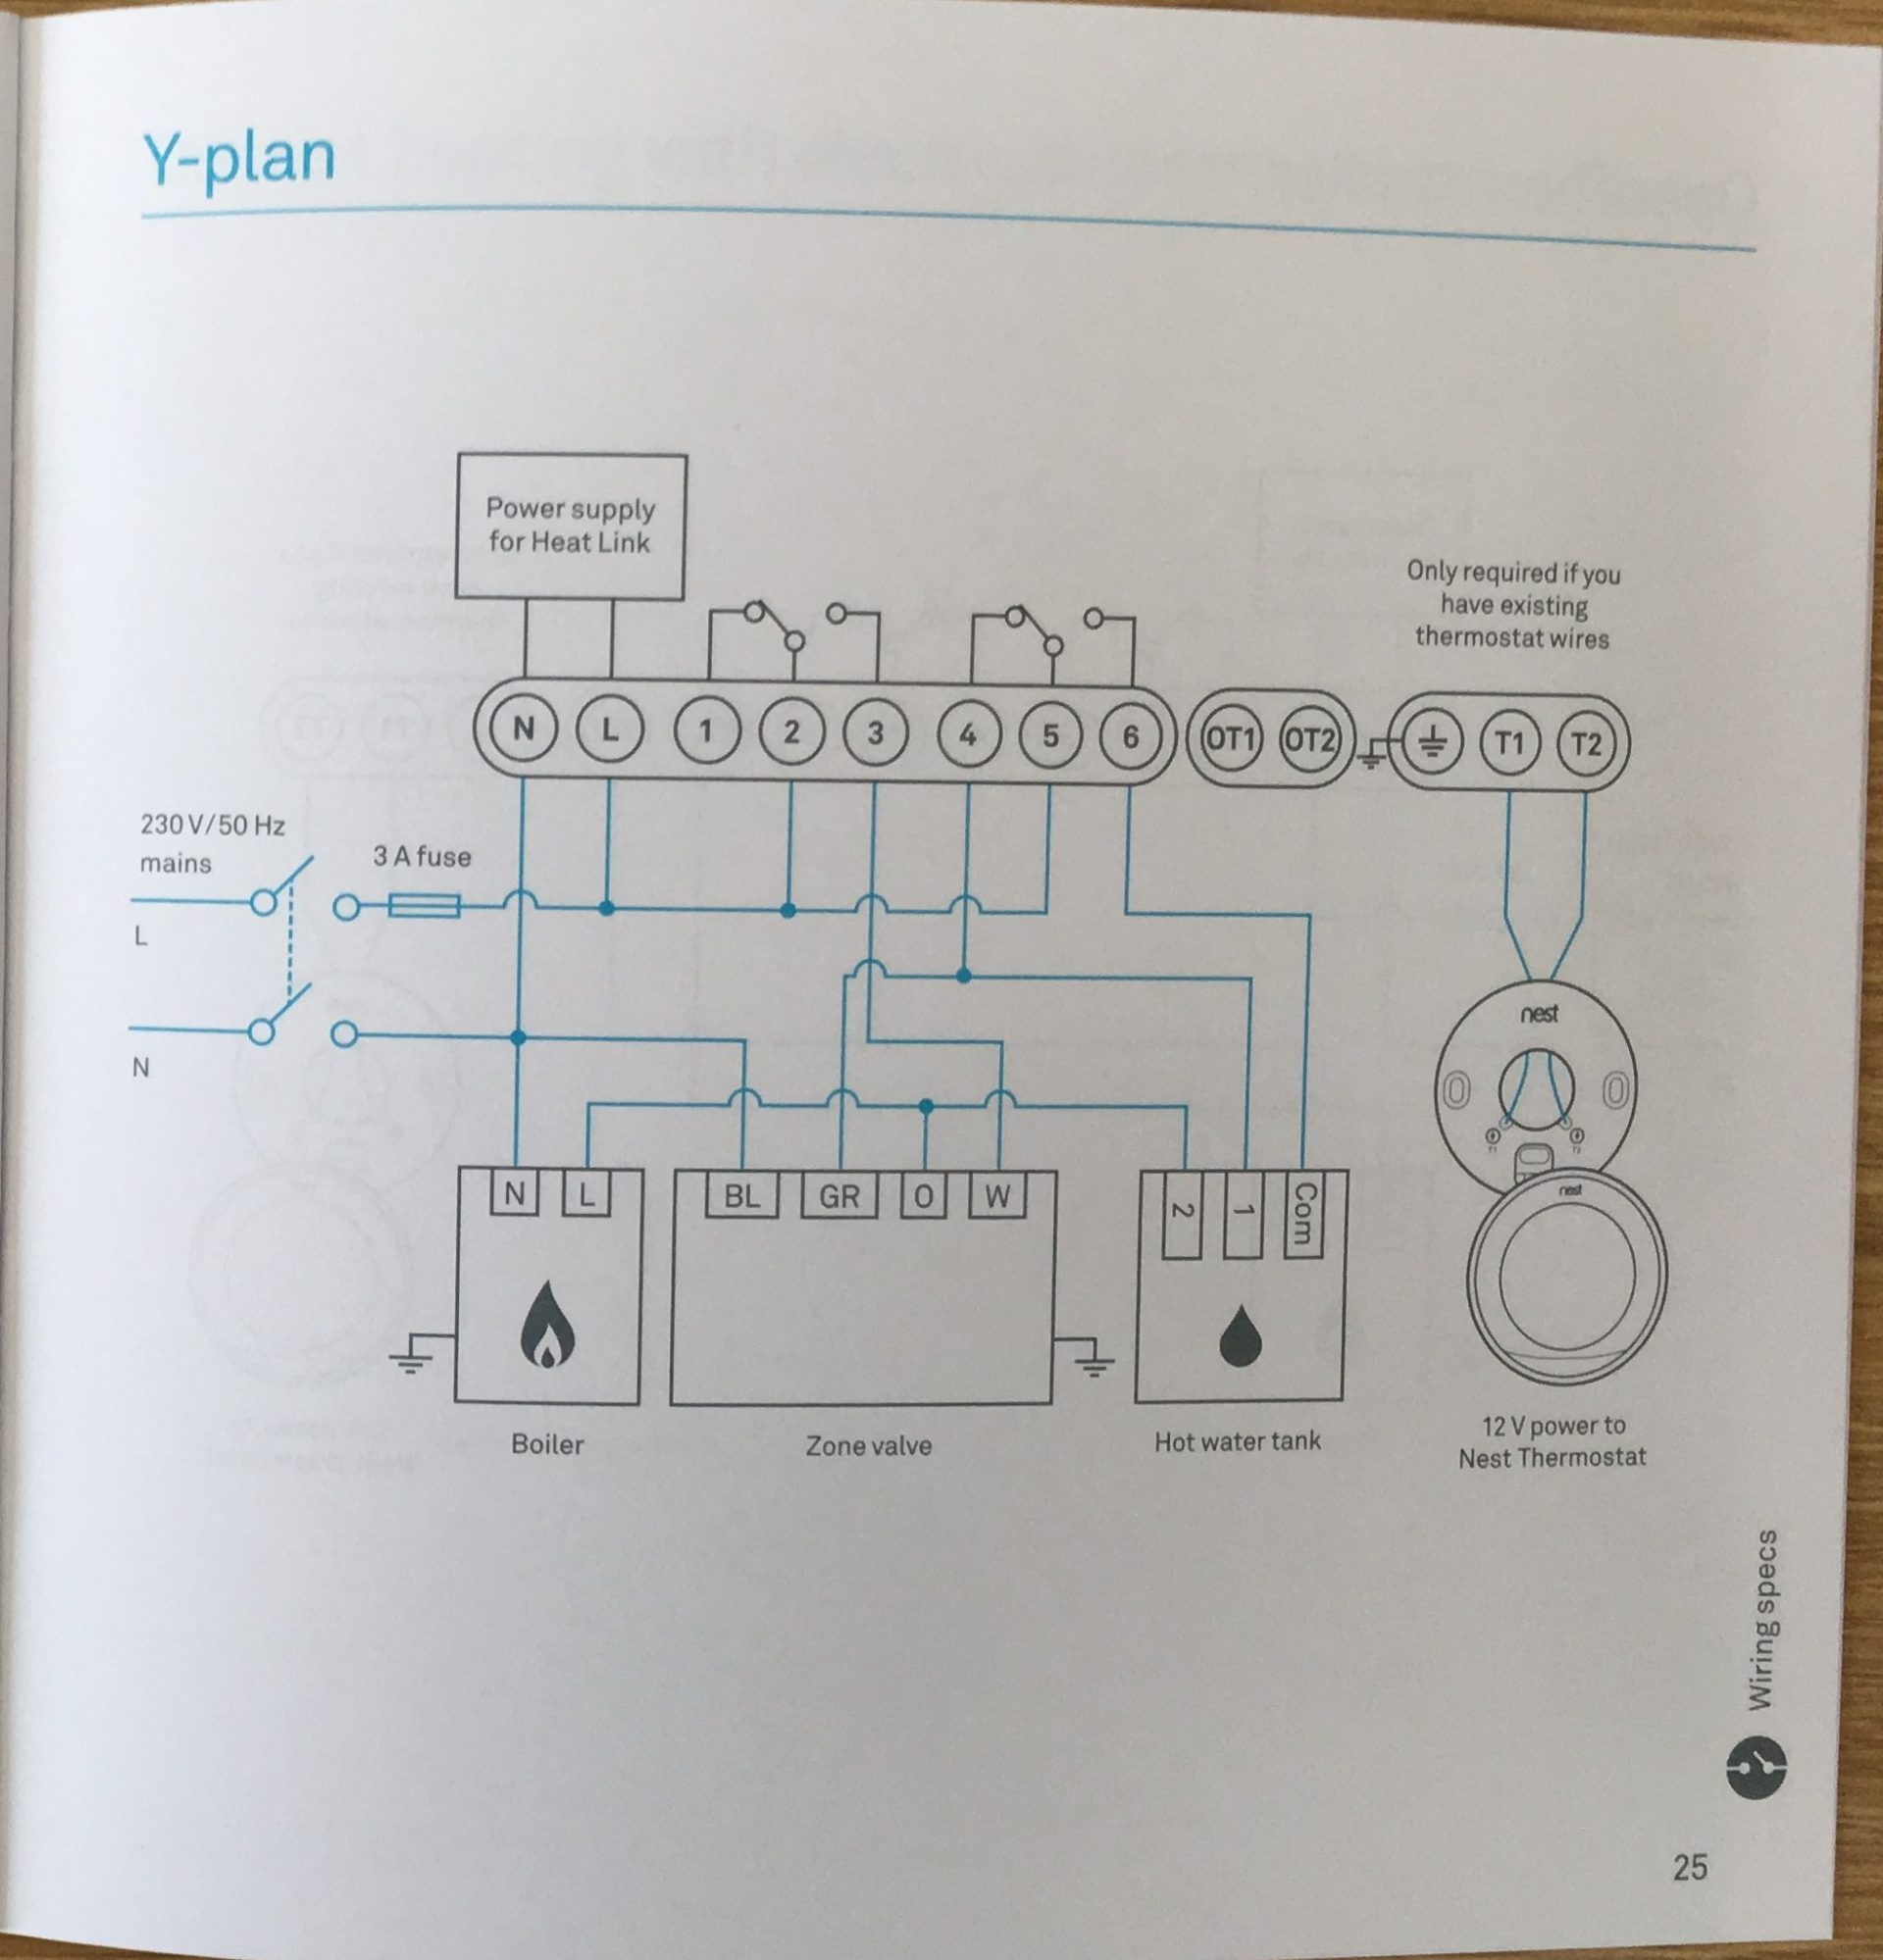 How To Install The Nest Learning Thermostat (3Rd Gen) In A Y-Plan - Nest Installation Wiring Diagram